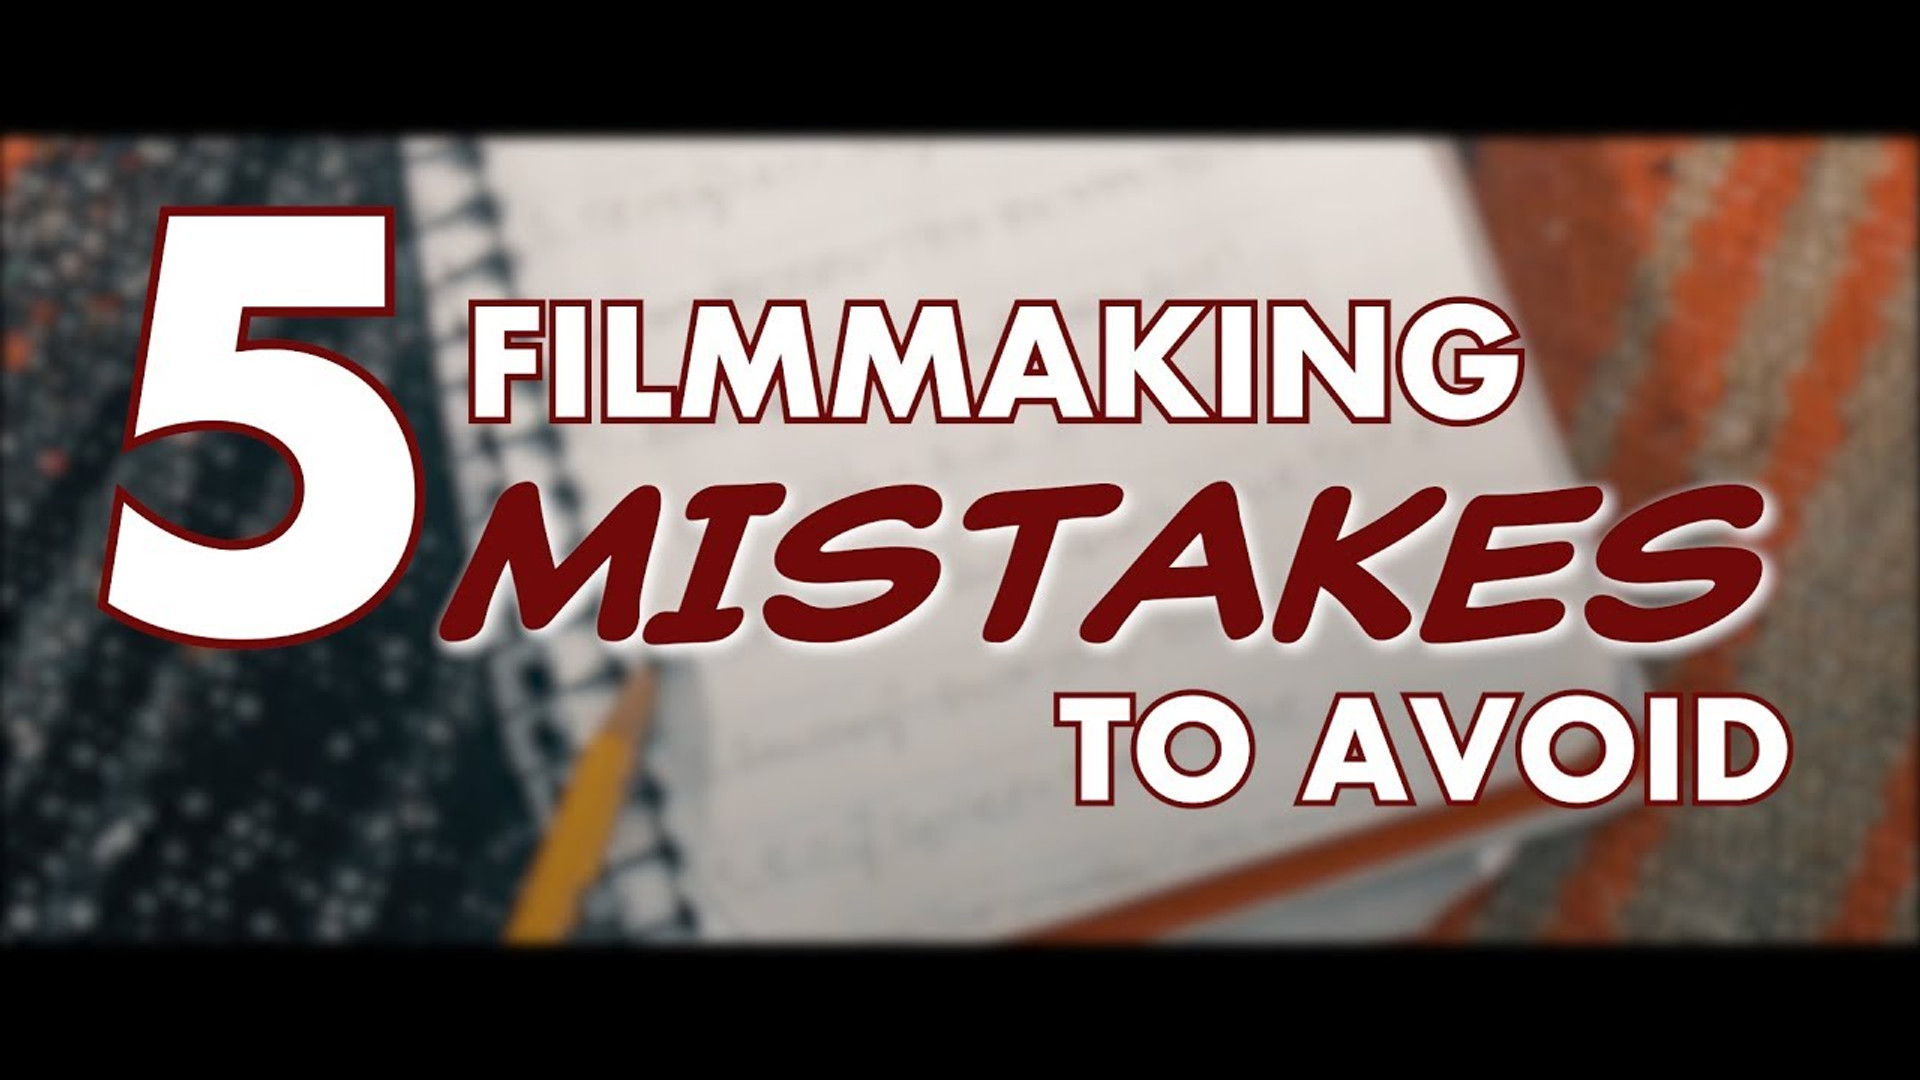 5 Filmmaking Mistakes To Avoid